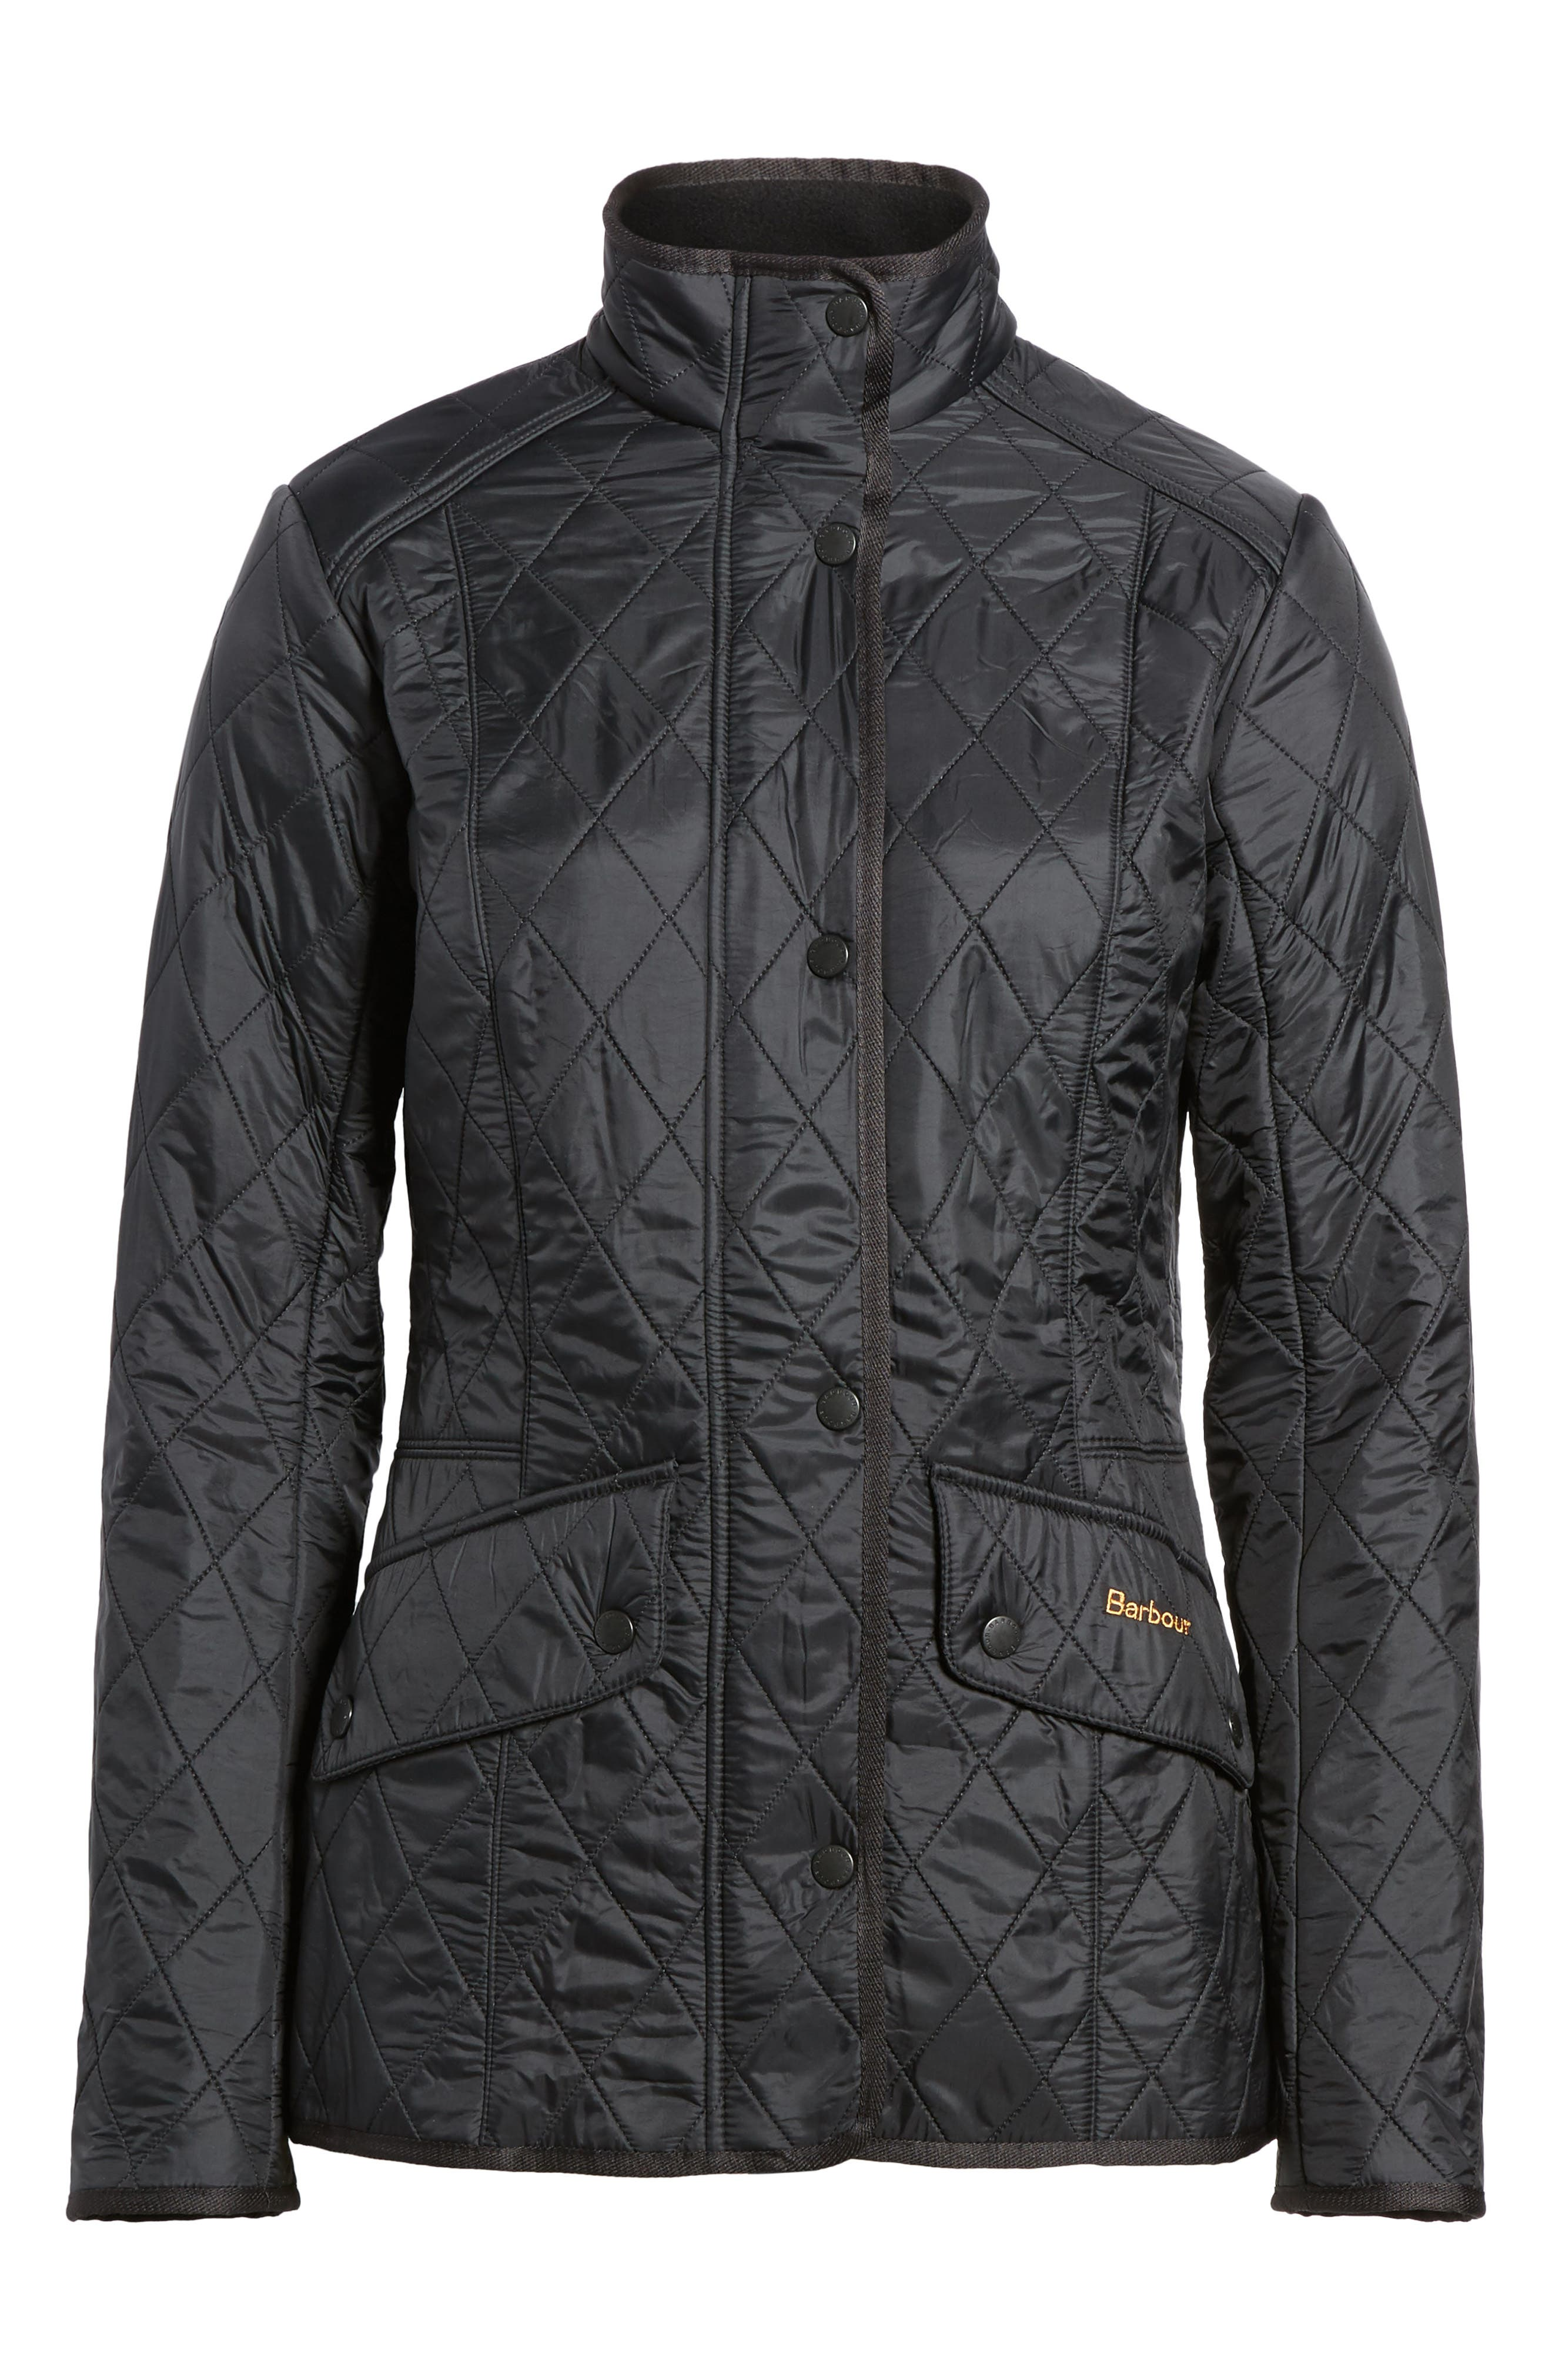 BARBOUR, 'Cavalry' Quilted Jacket, Alternate thumbnail 5, color, 001